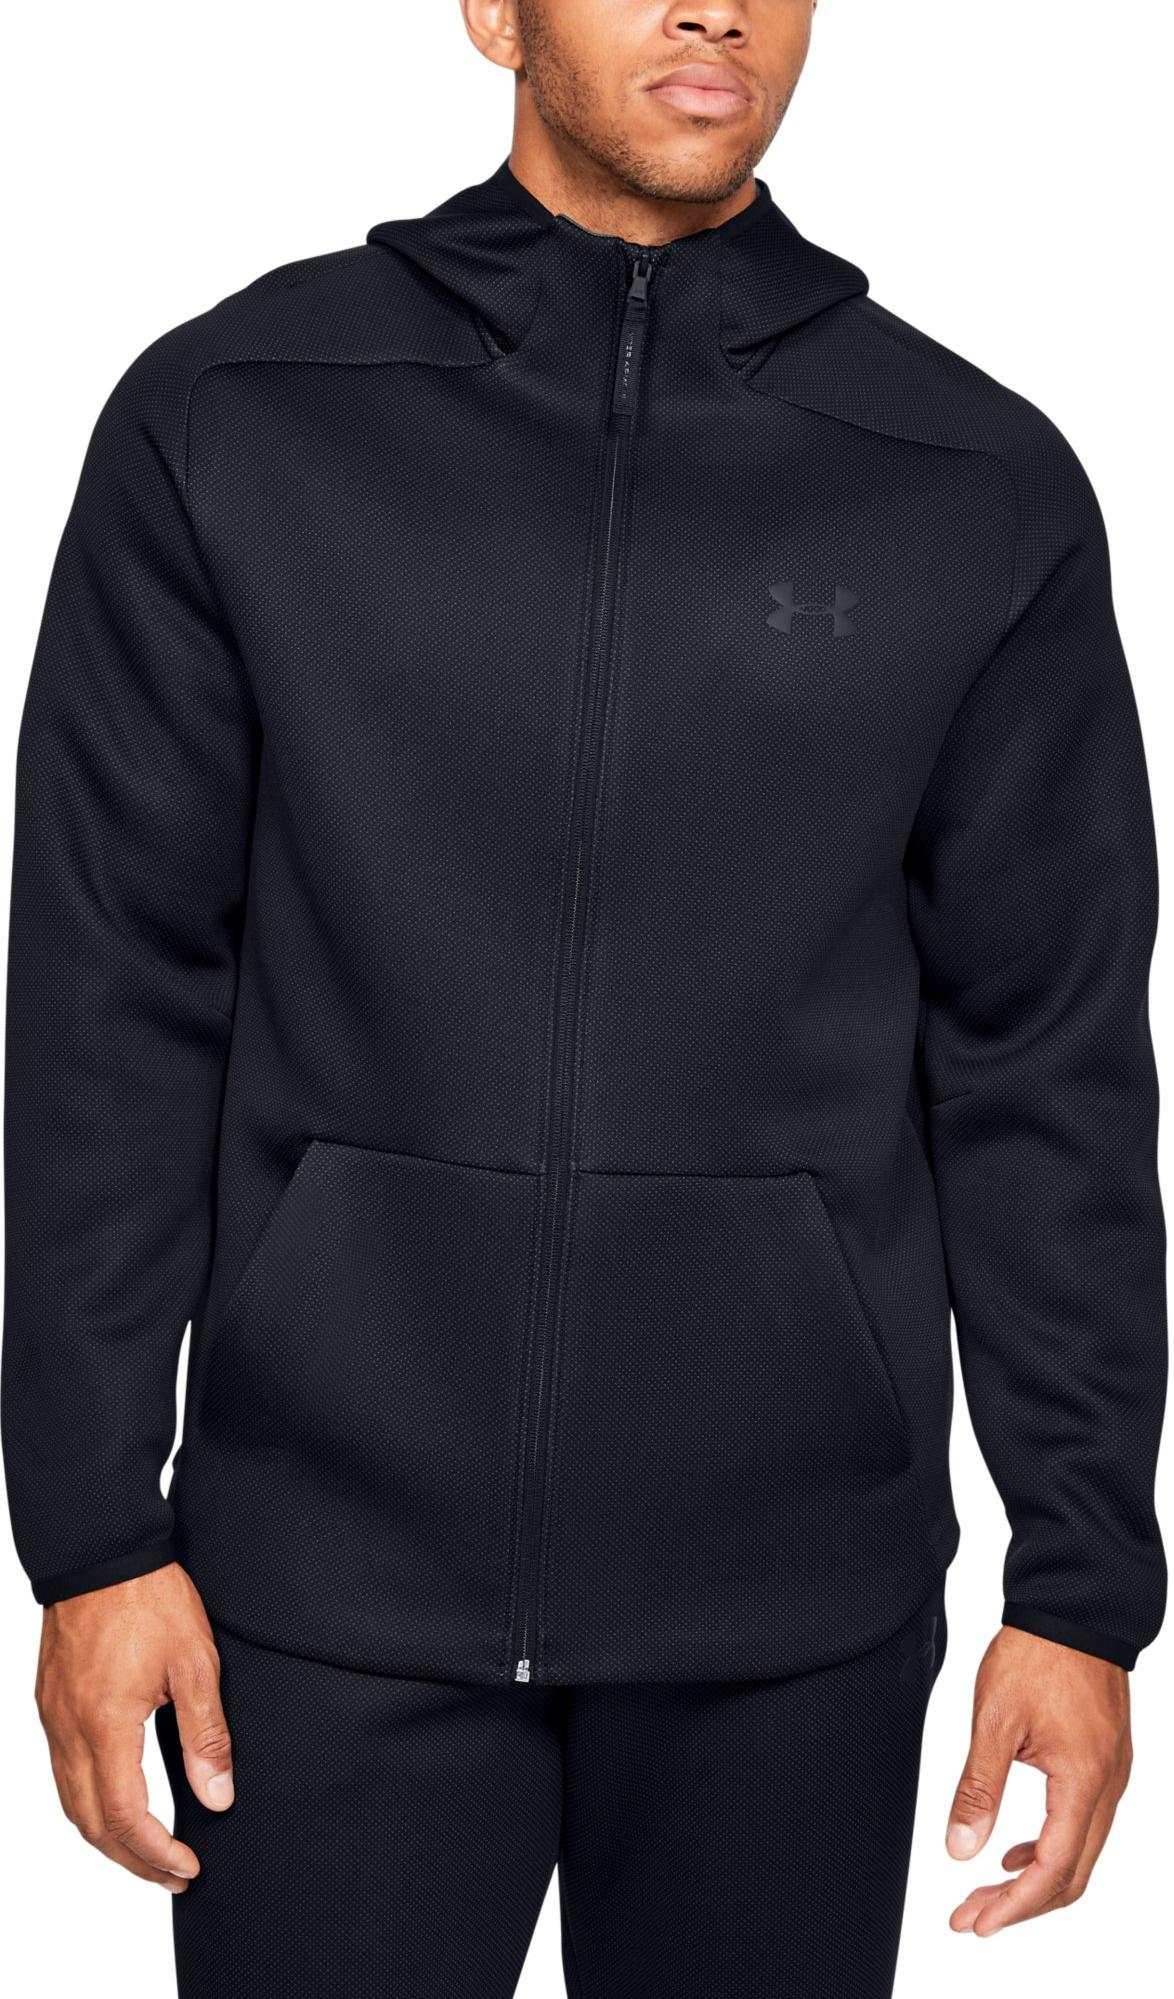 Mikina s kapucňou Under Armour UA /MOVE FZ HOODIE